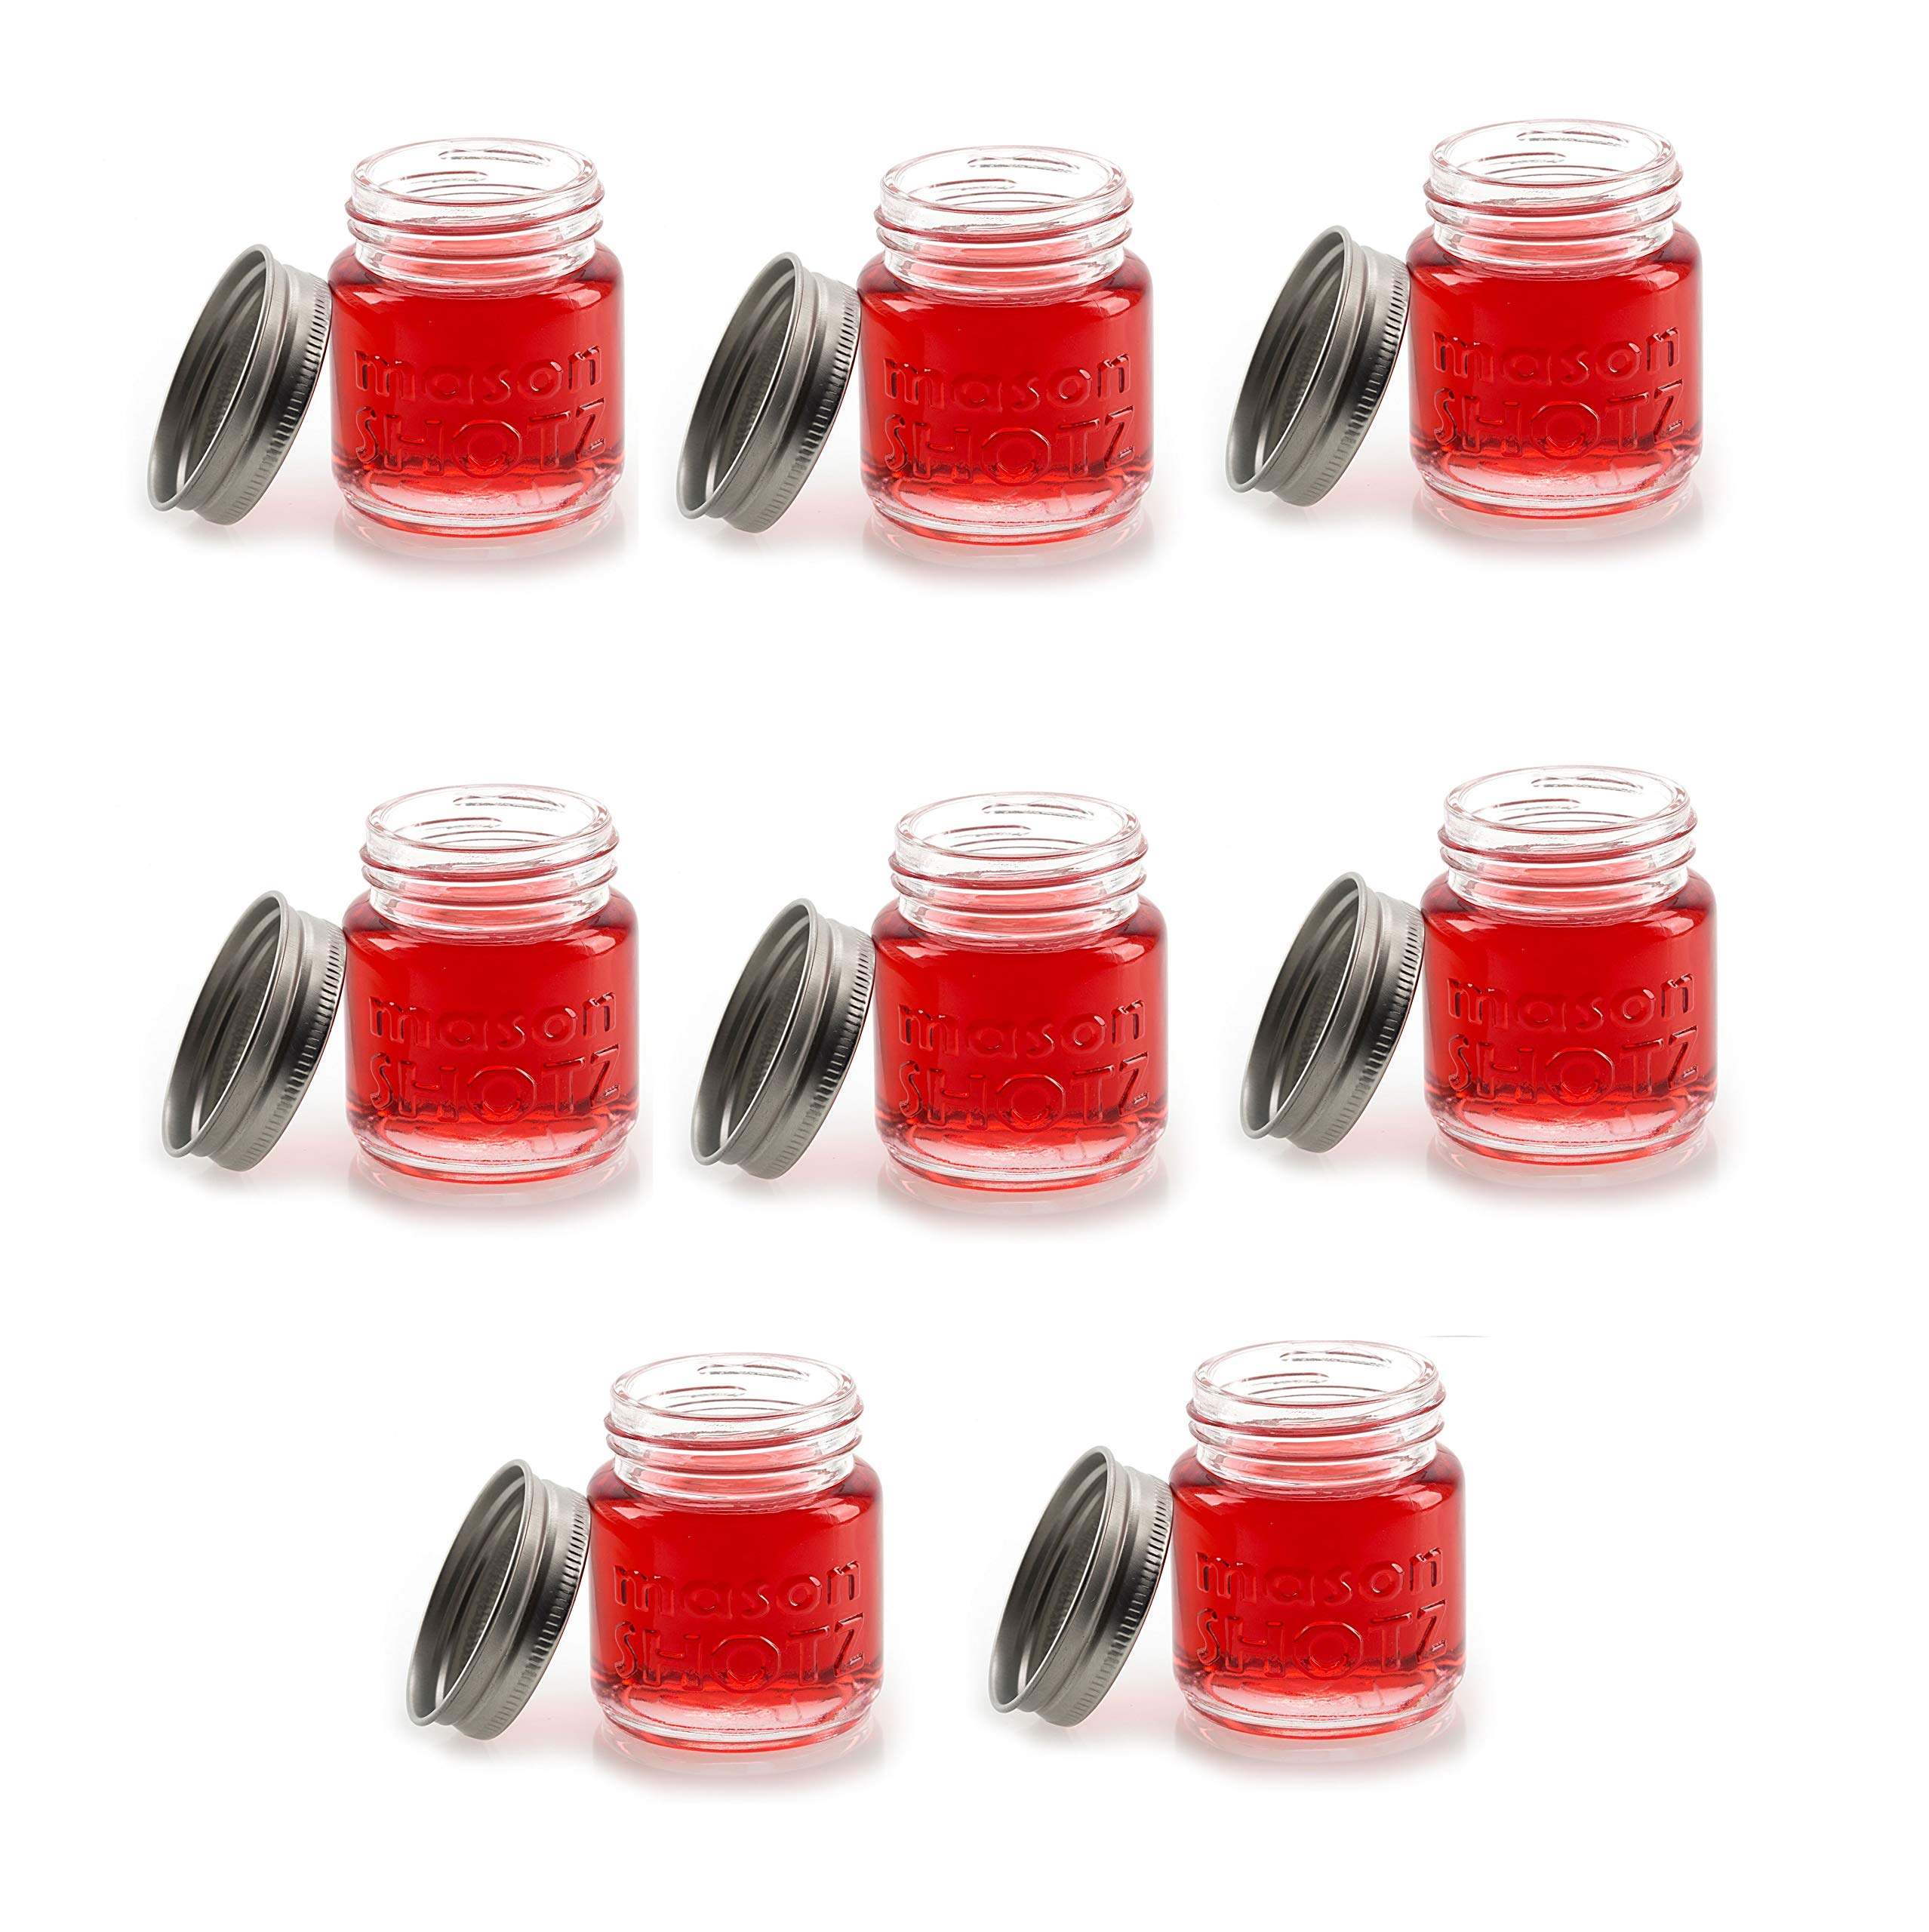 Mason Jar Shot Glasses with Lids (Set of 8) – Mason Jar 2 Ounce Shot Glasses w/Leak-Proof Lids - Great For Shots, Drinks, Favors, Candles And Crafts by Premium Vials